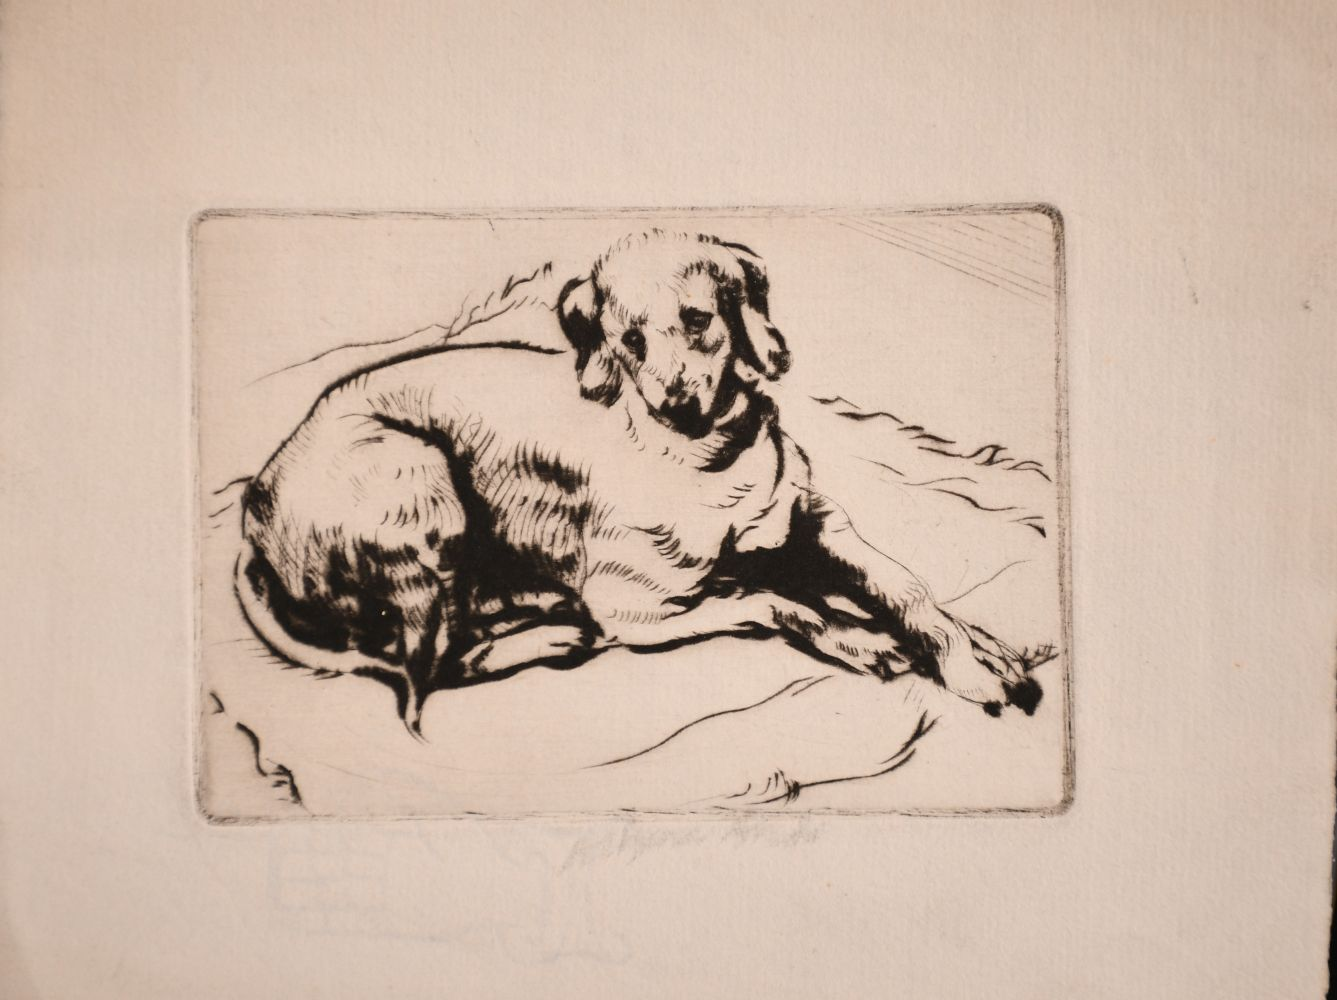 Athena Andrade, A group of dog etchings signed in pencil, etchings, various sizes, (5) - Image 2 of 6